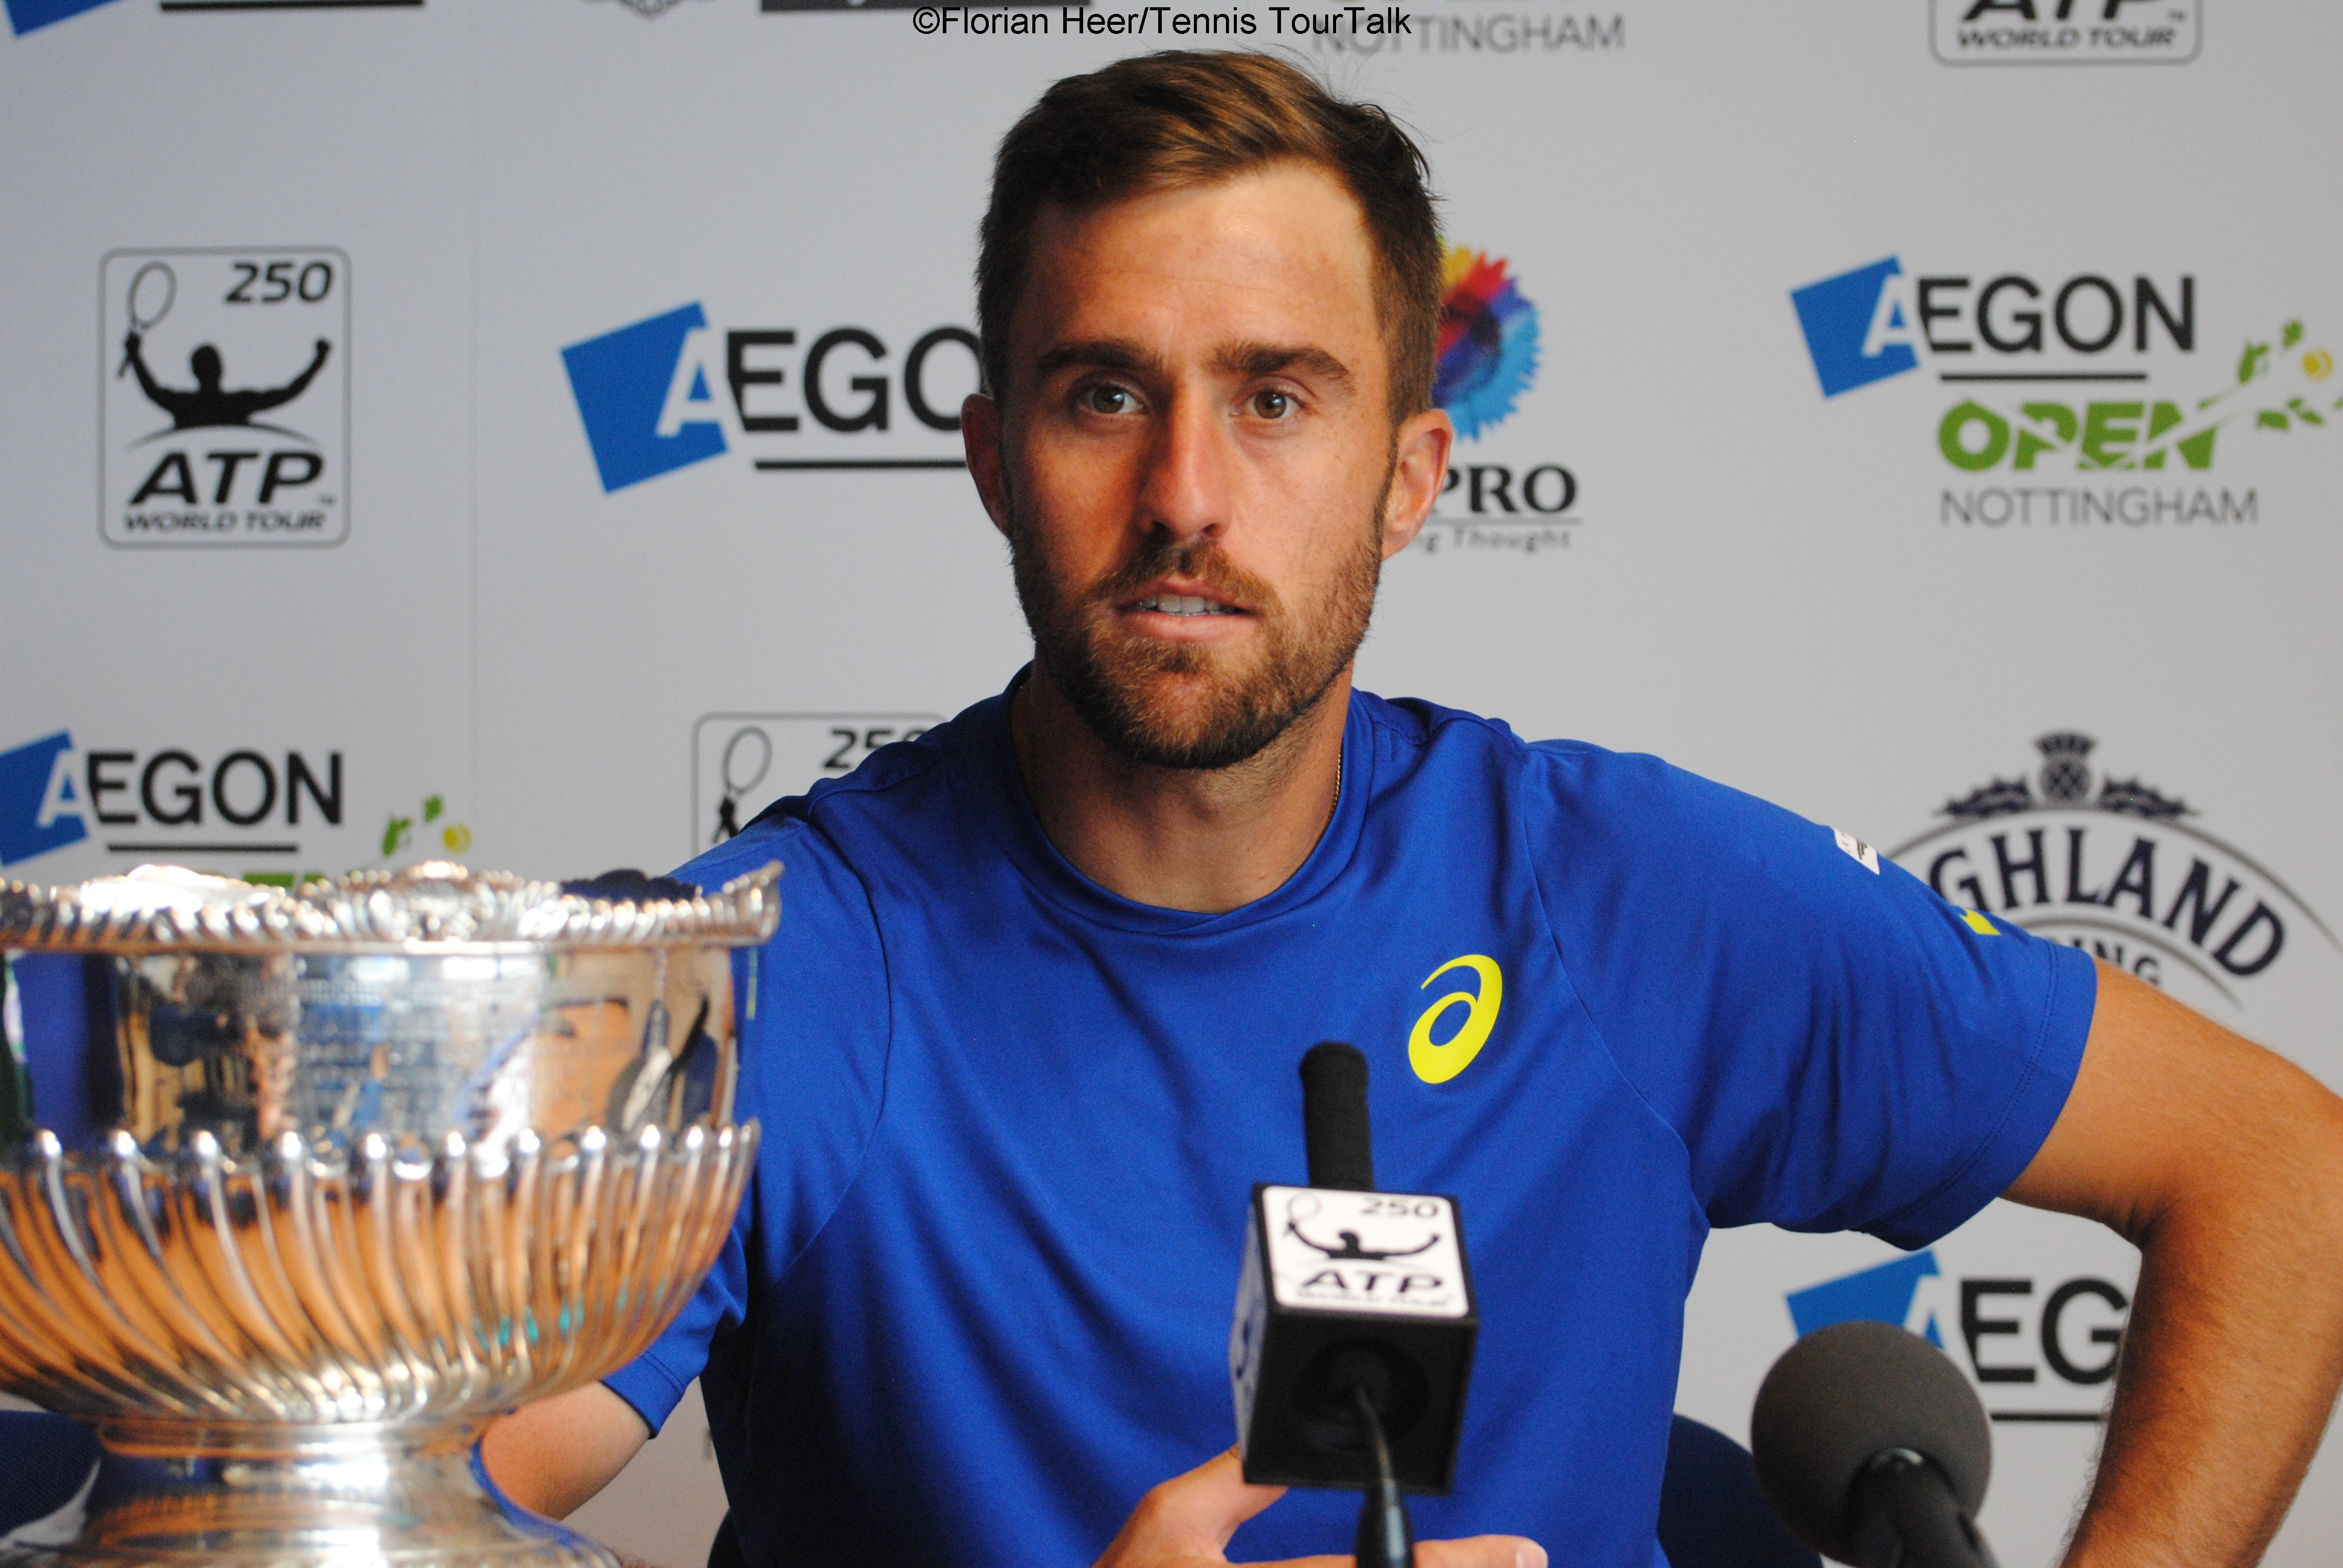 Steve Johnson 3 Tennis TourTalk